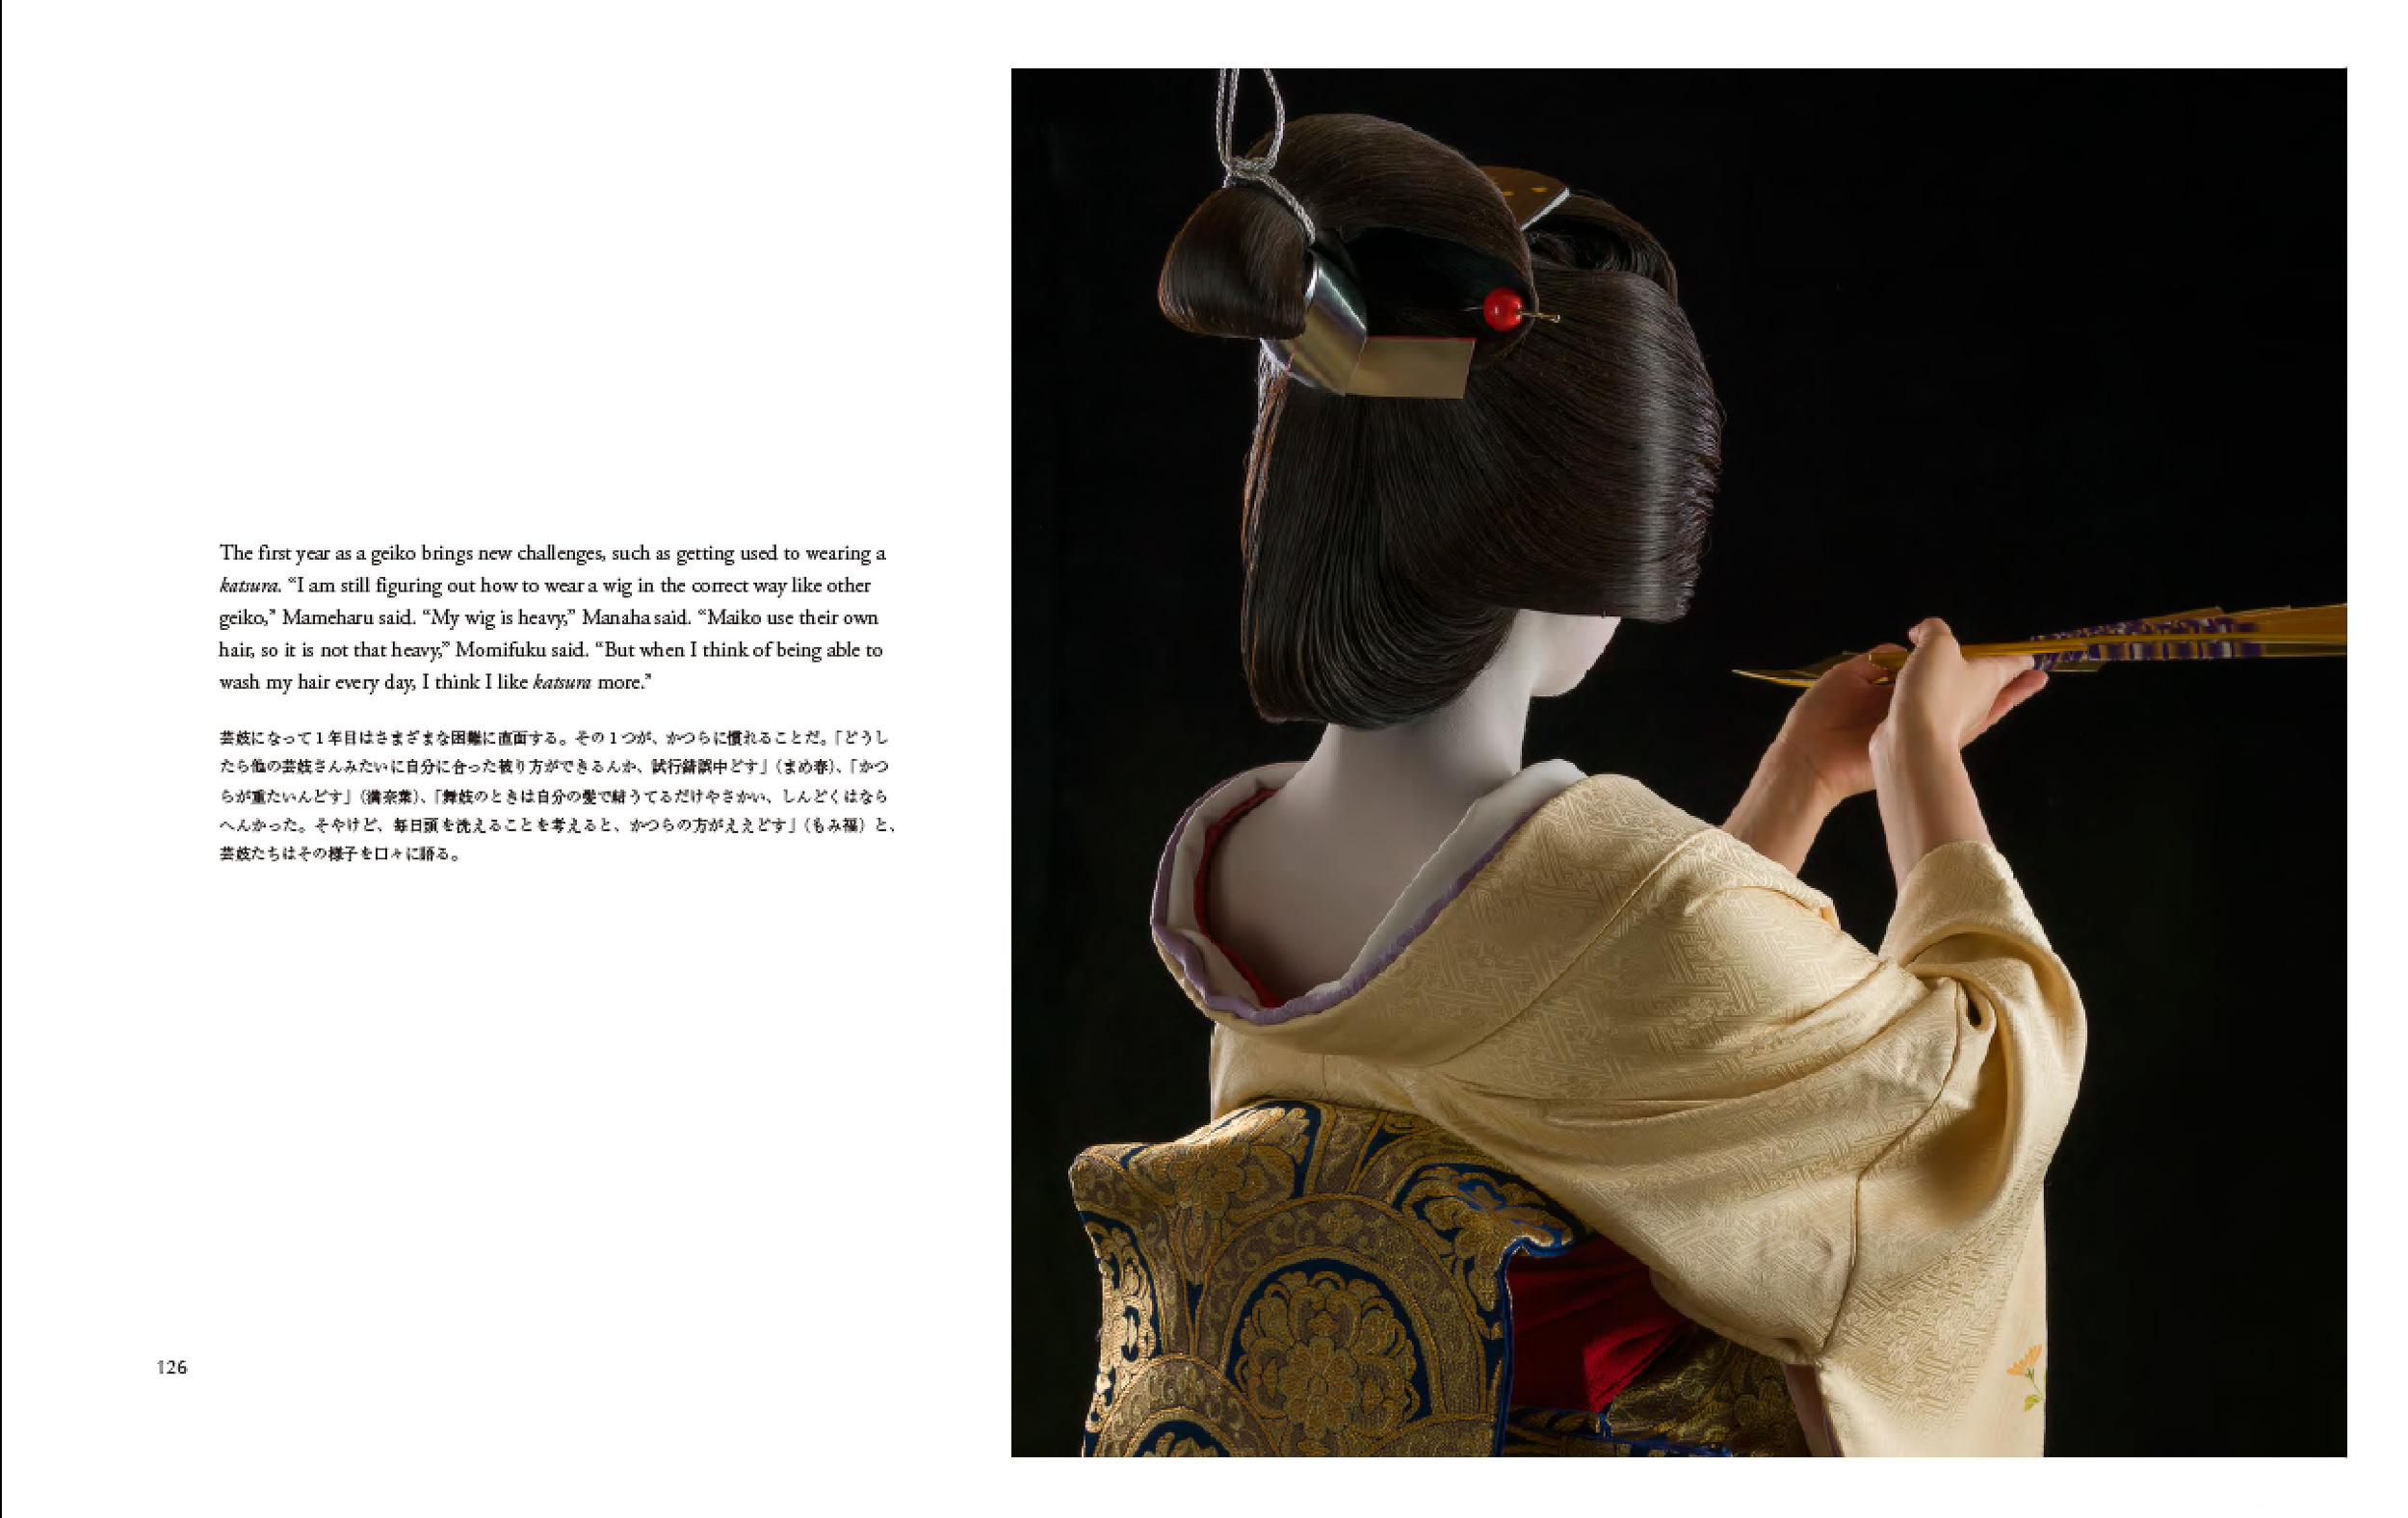 Now-a-Geisha-pages-126-7.jpg